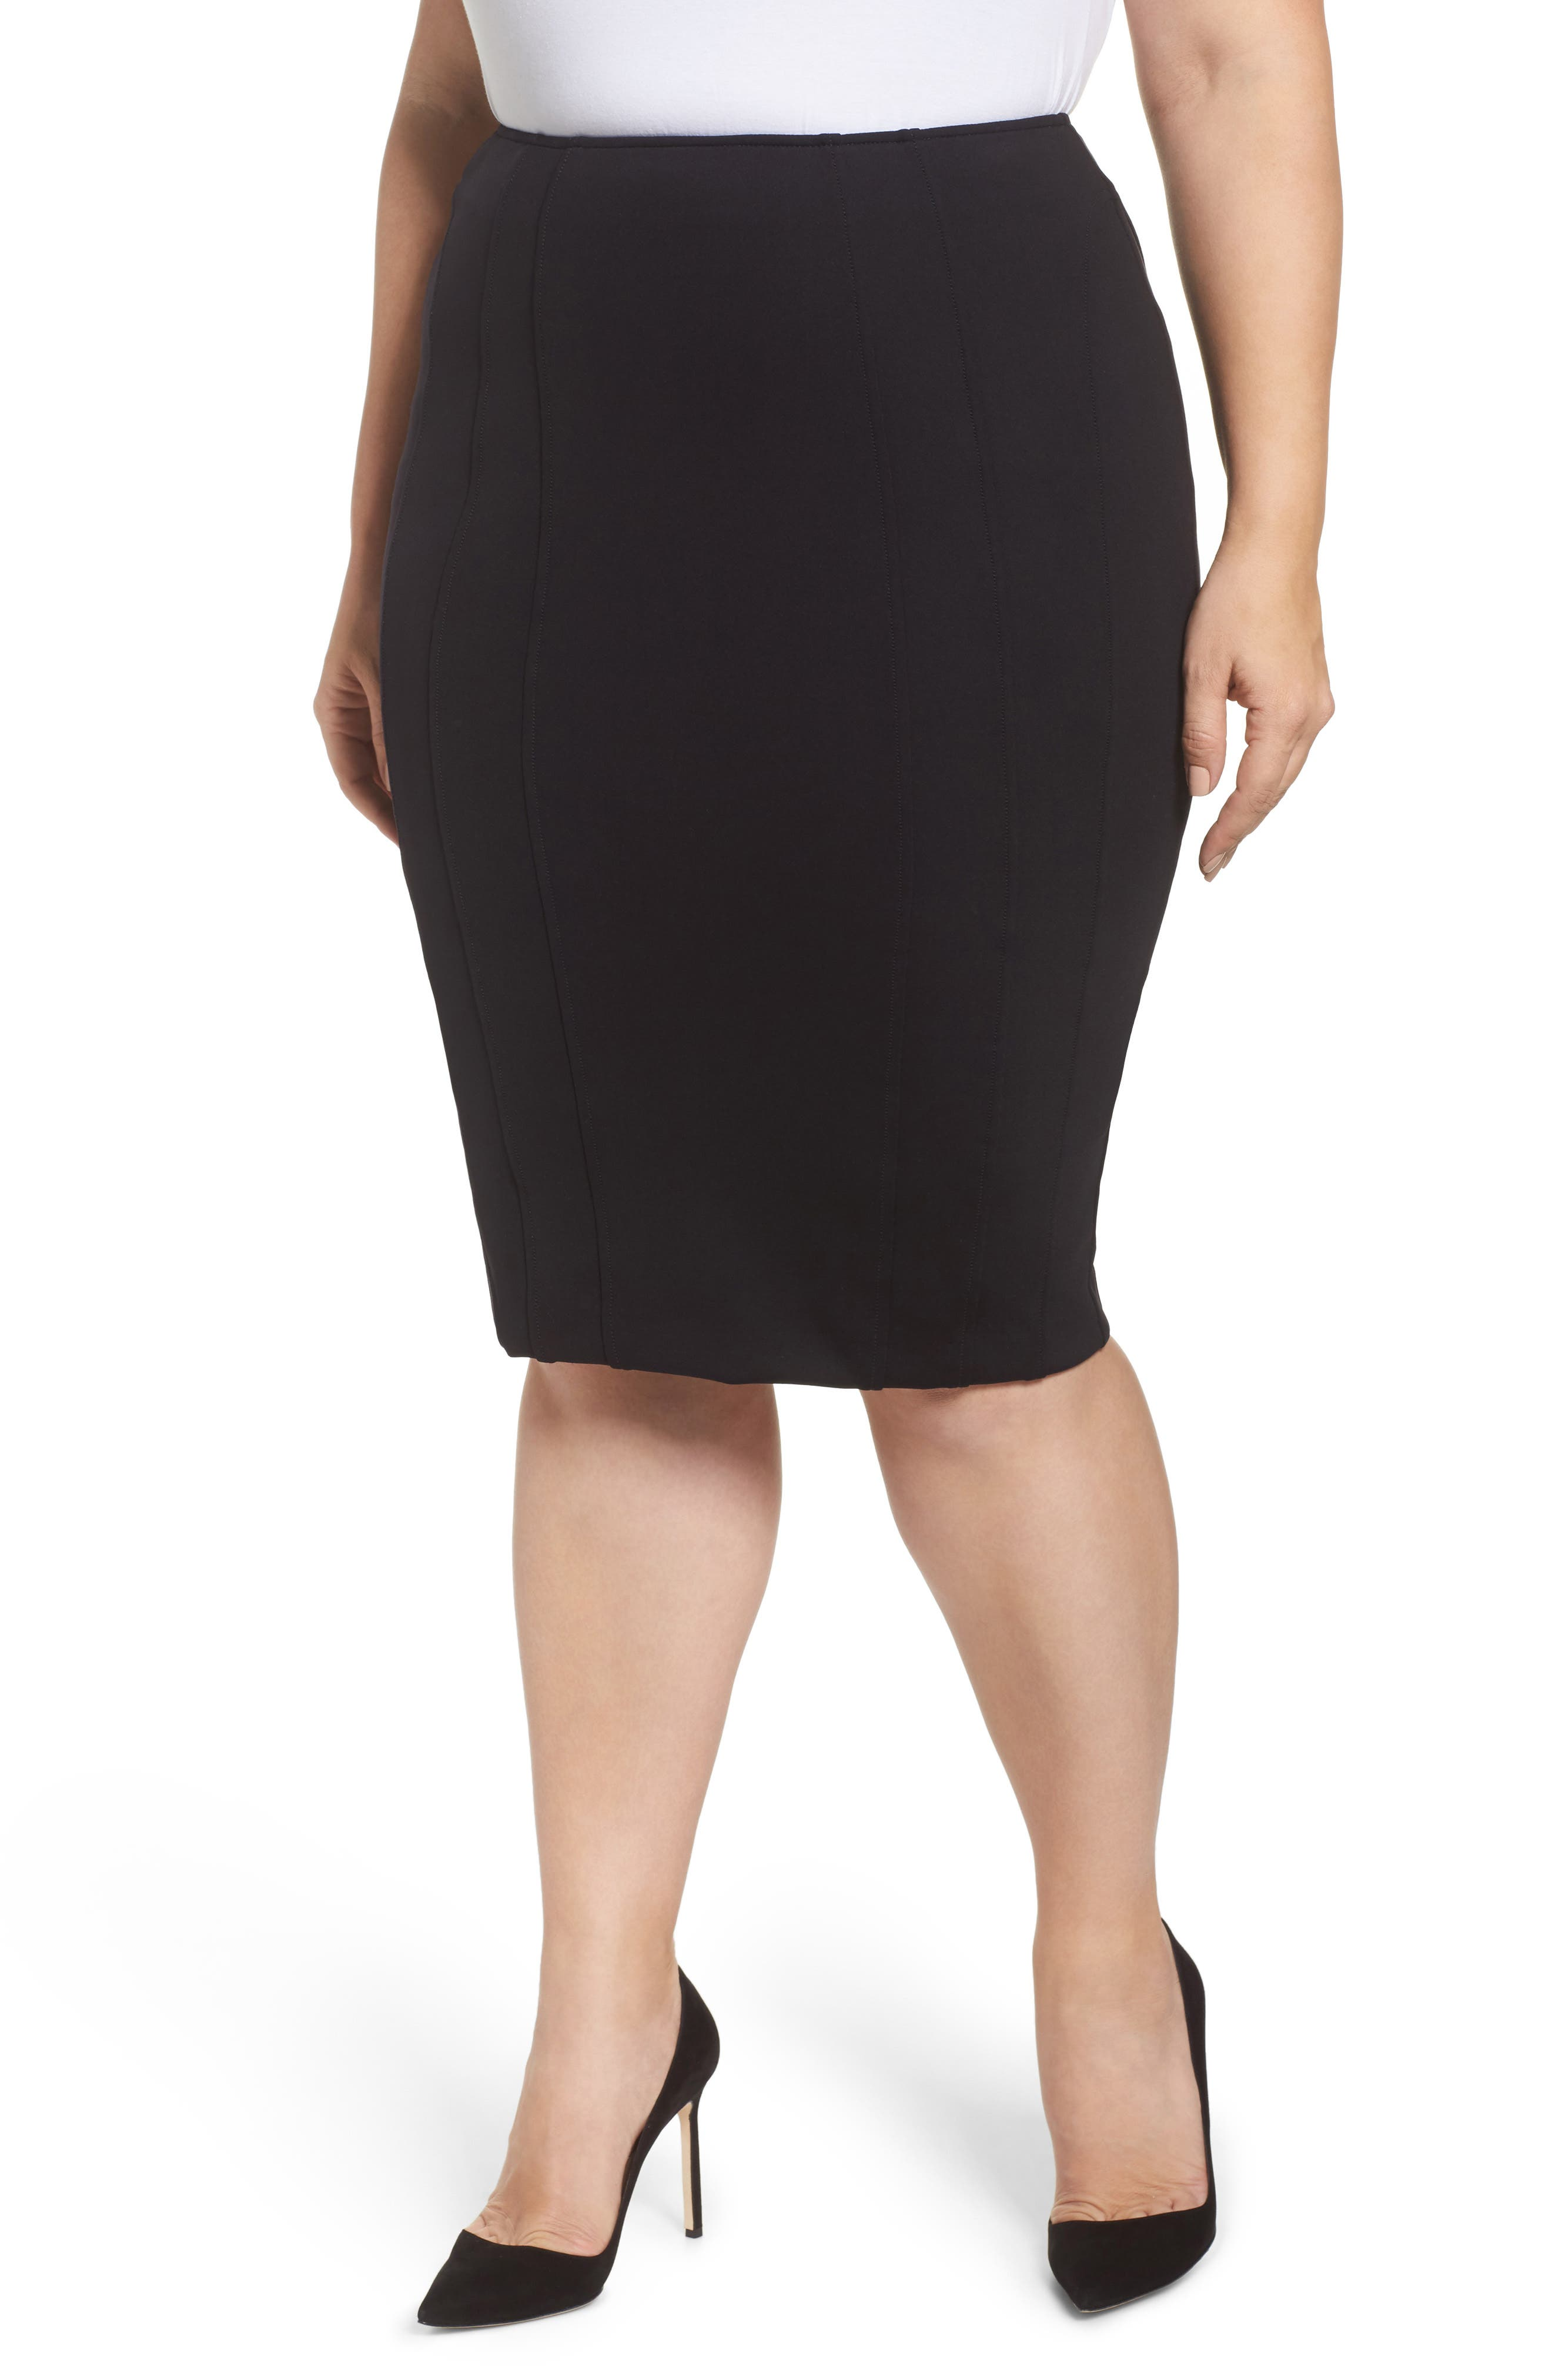 Ashley Graham x Marina Rinaldi Ocraceo Jersey Pencil Skirt (Regular & Plus Size)